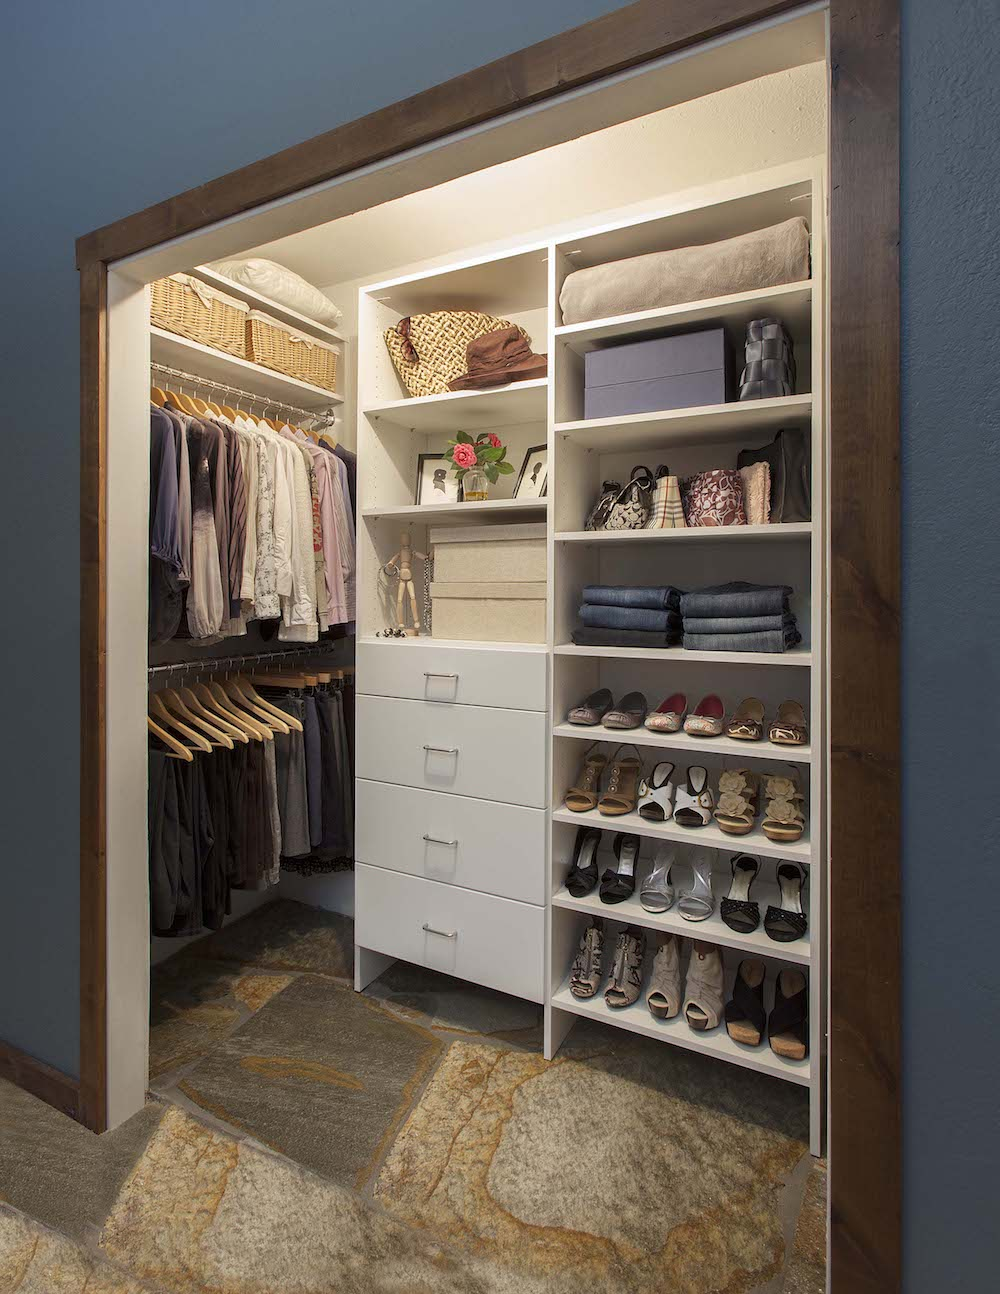 Prefab Closet Systems | Diy Walk in Closet | Walk in Closet Shelving Ideas